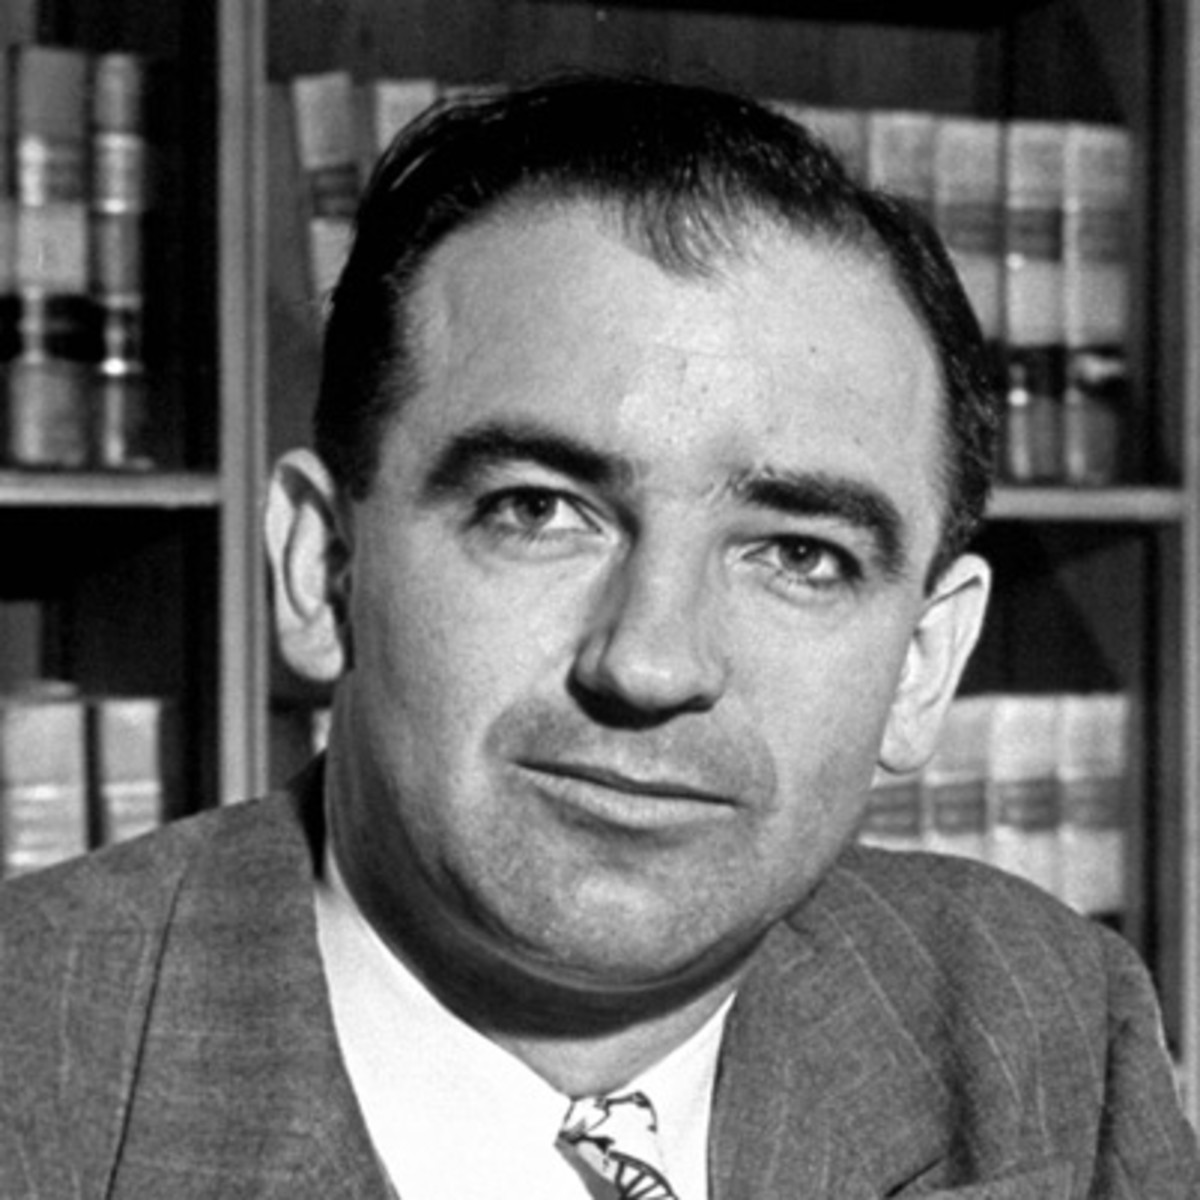 an introduction to the life of joseph r mccarthy Senator joseph maccarthy essay examples 1,495 total results an introduction to the life of joseph r mccarthy 806 words 2 pages an introduction to the life and history of senator joseph mccarthy 1,212 words 3 pages.